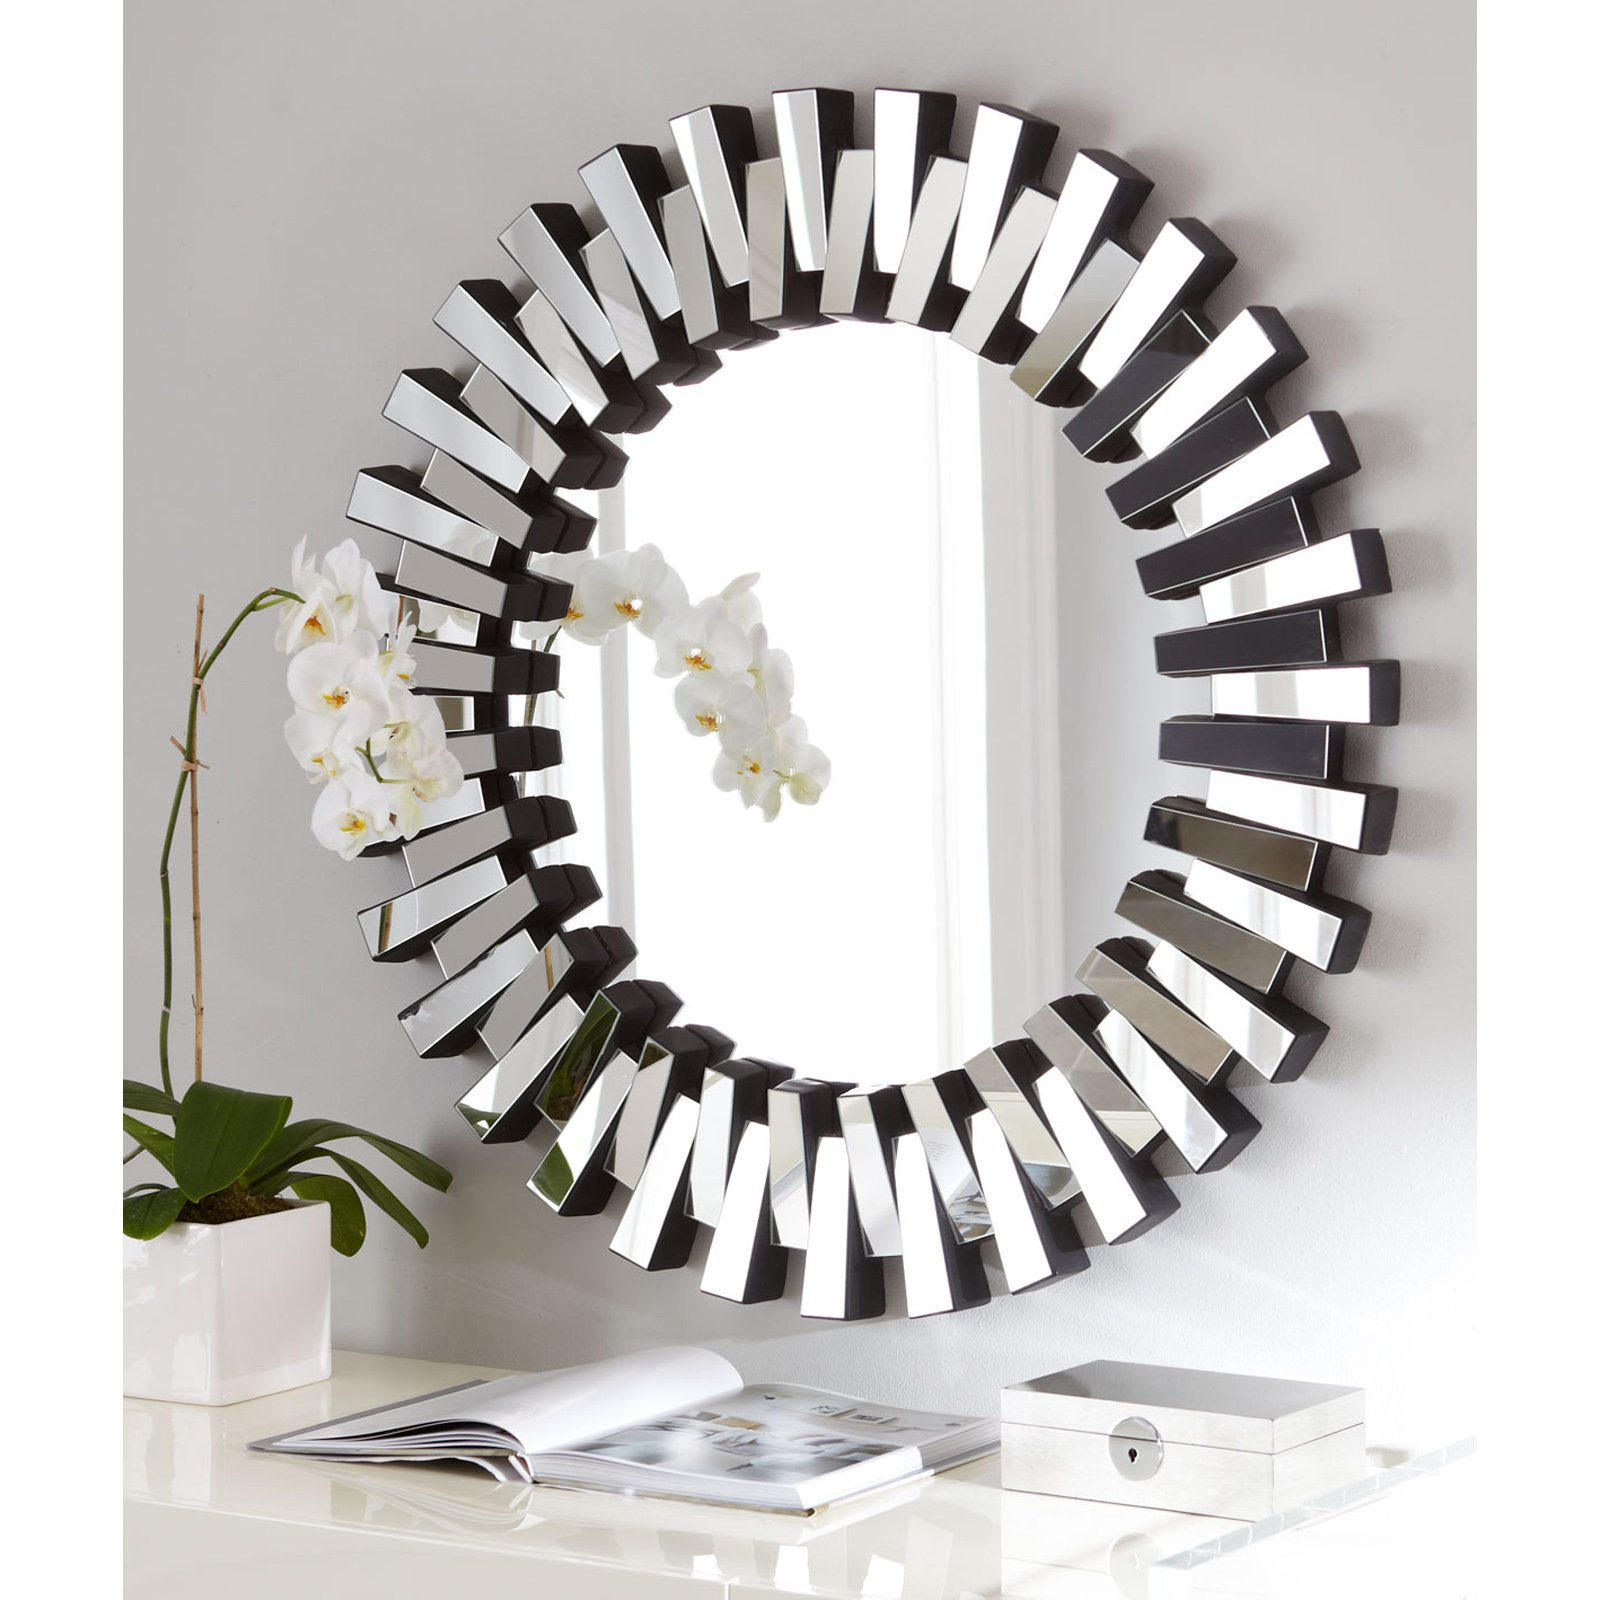 Image of: Modern Wall Mirrors Round